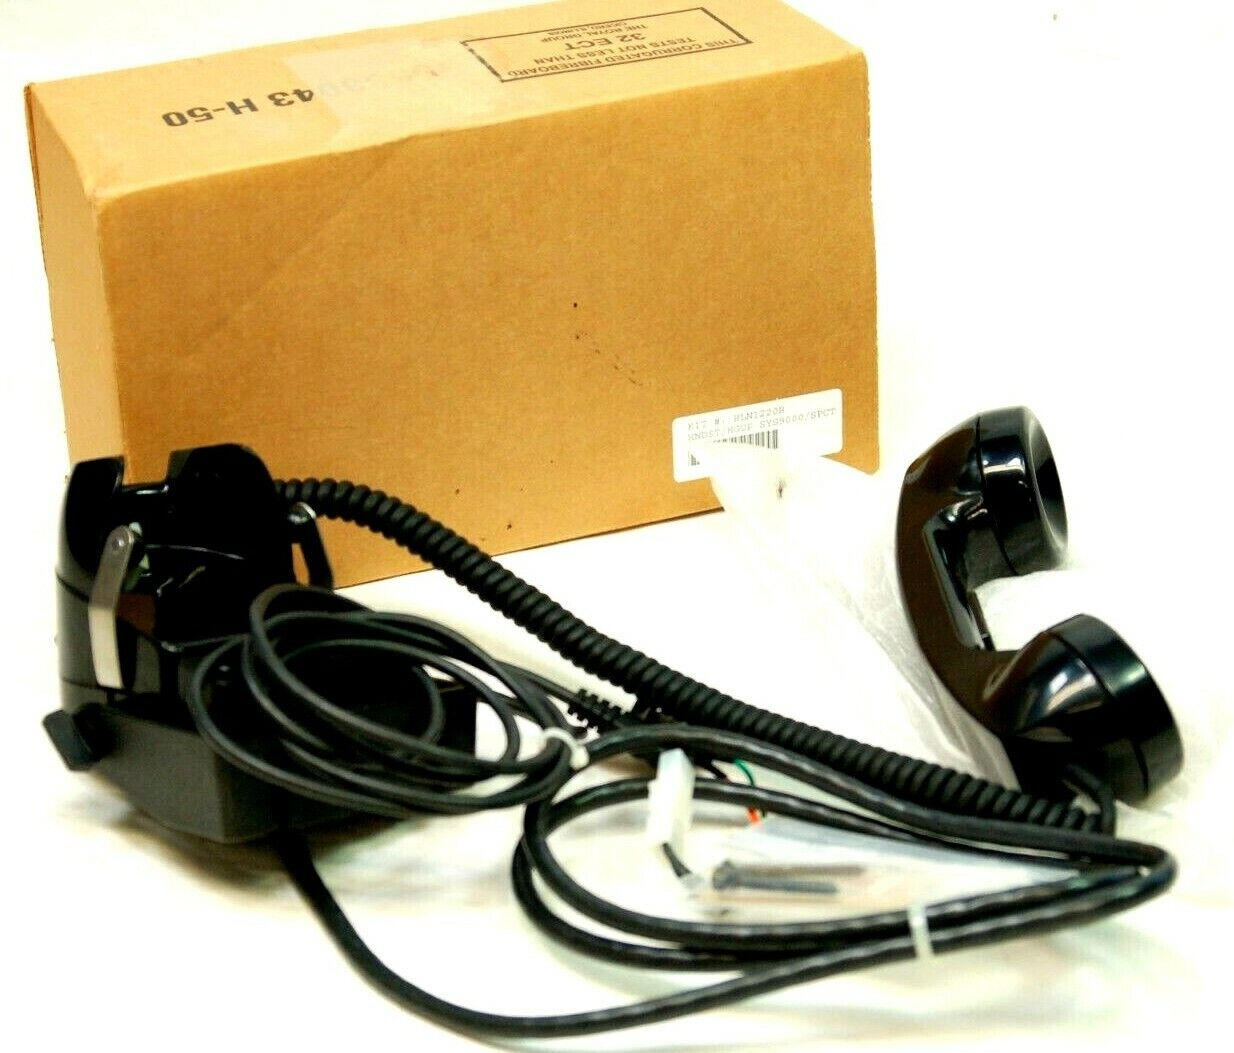 Motorola HLN1220B Handset with Cradle Fits Maratrac Syntor, Spectra. Available Now for 94.99